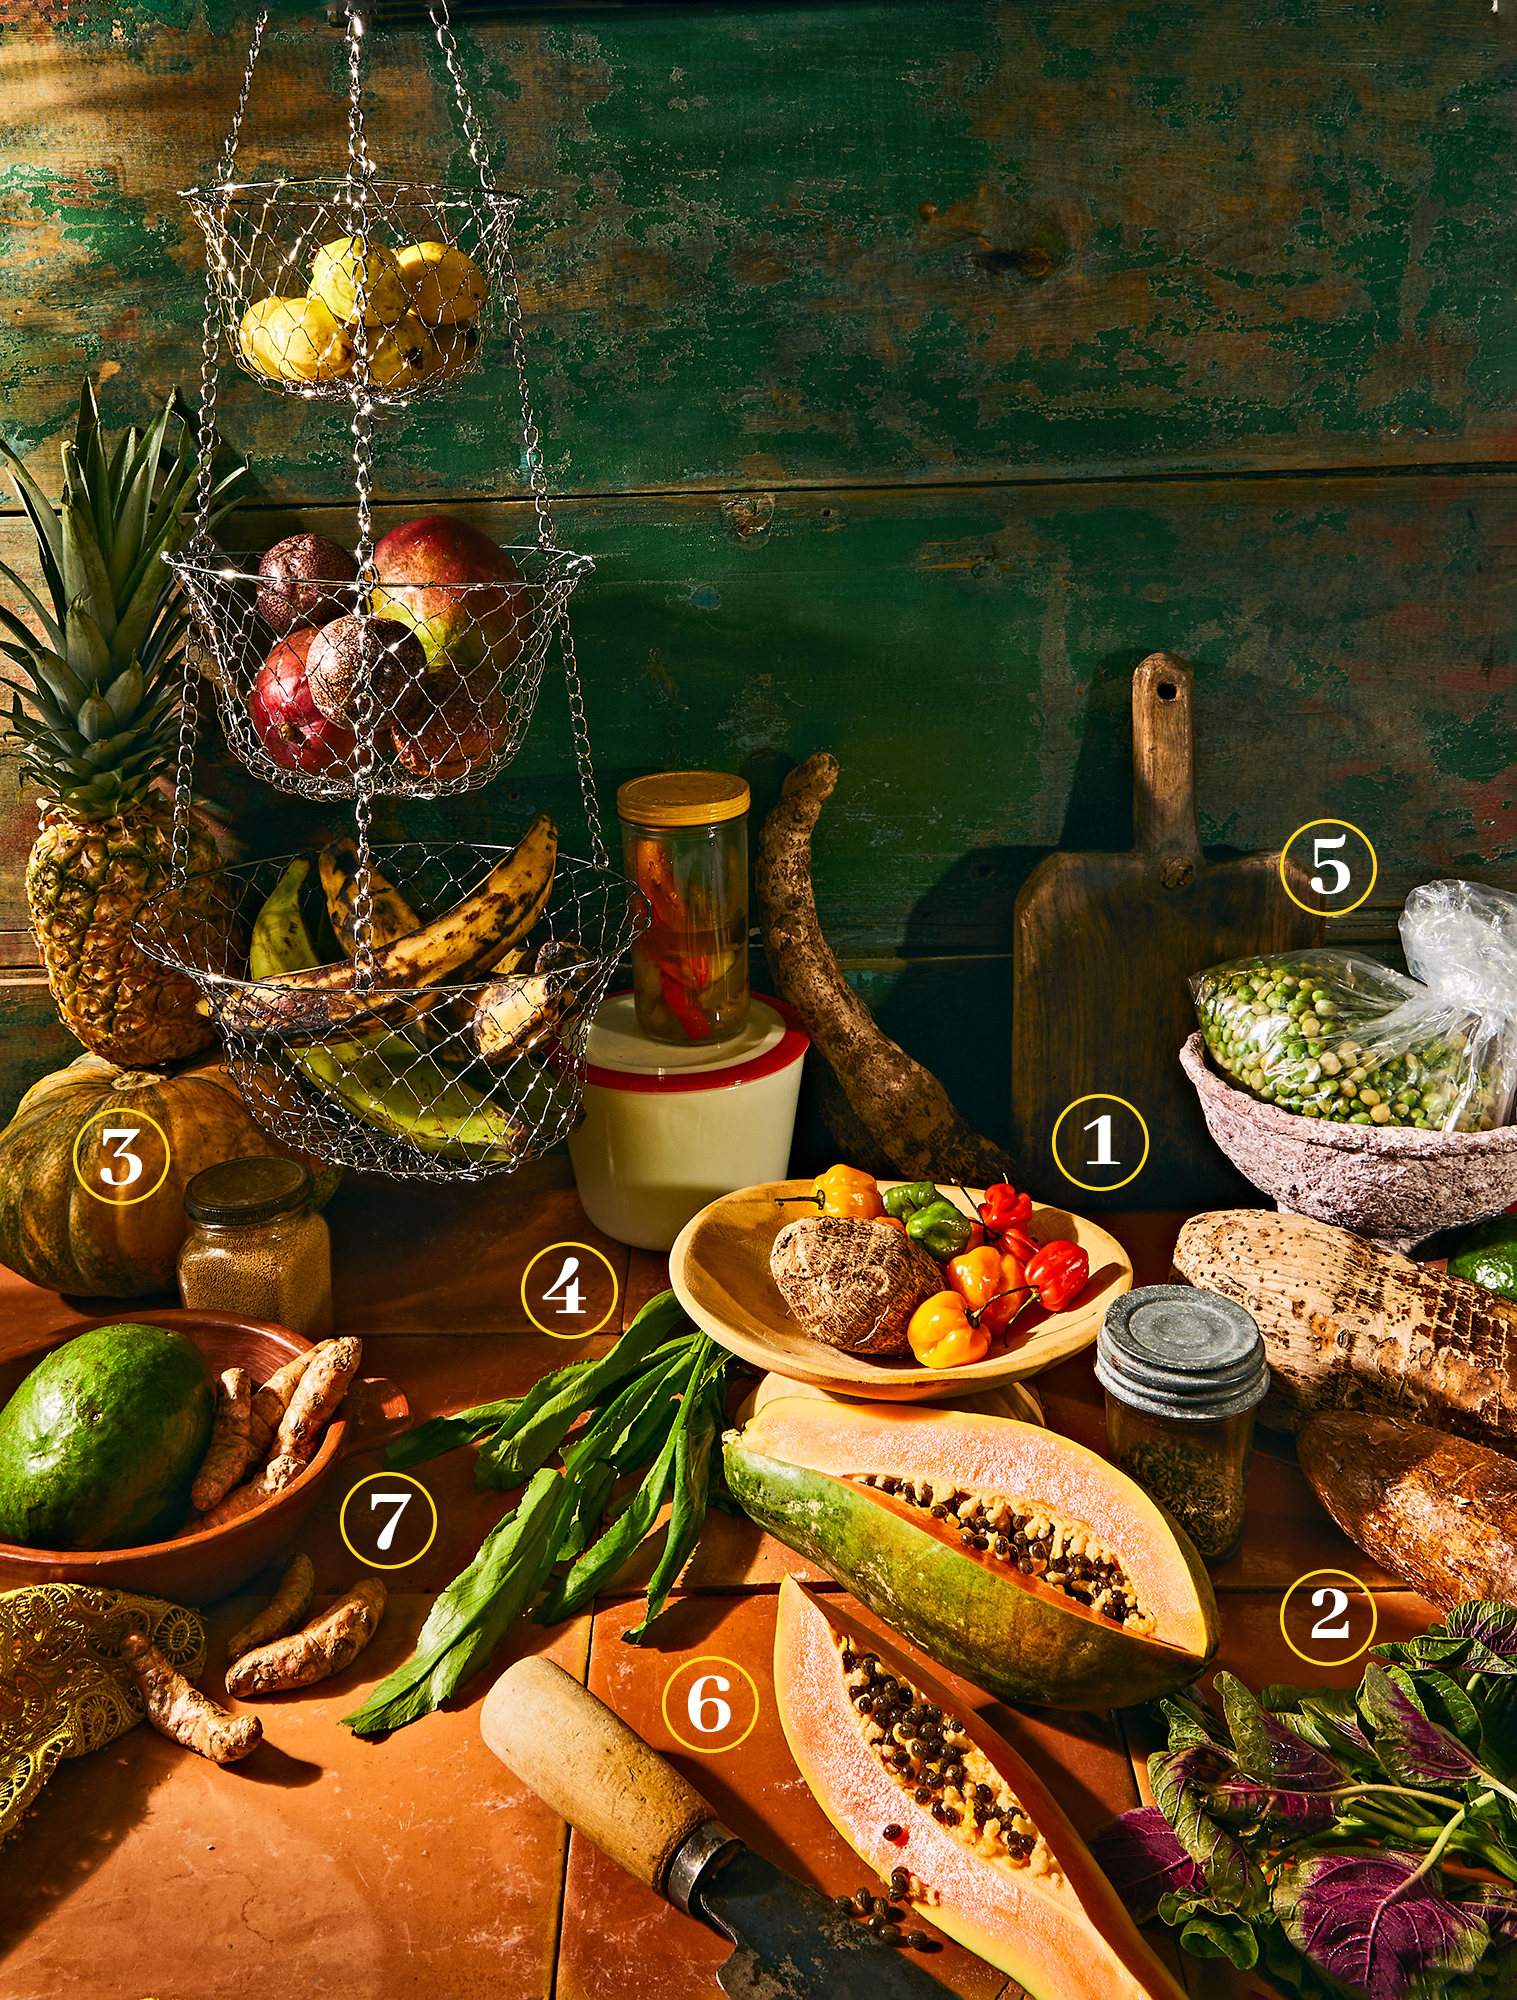 A variety of produce sitting on a orange tile surface with a green painted wooden surface in the background